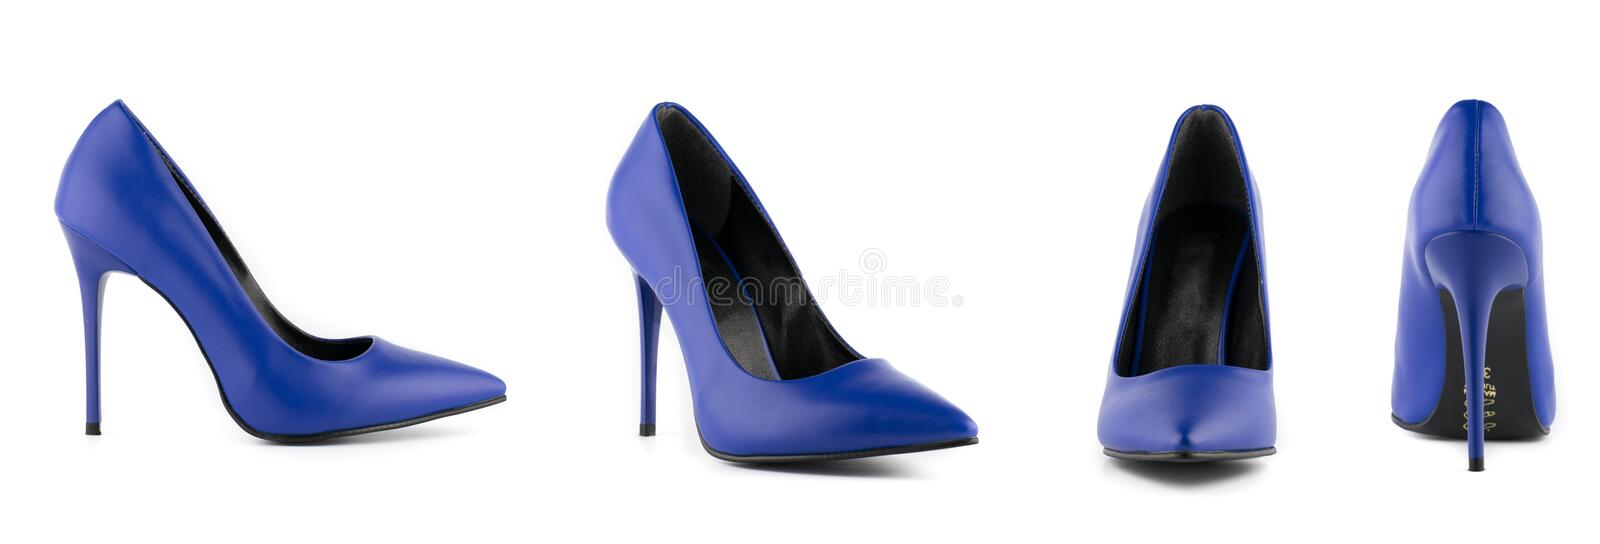 Woman stiletto high heel shoes isolated blue stock photos